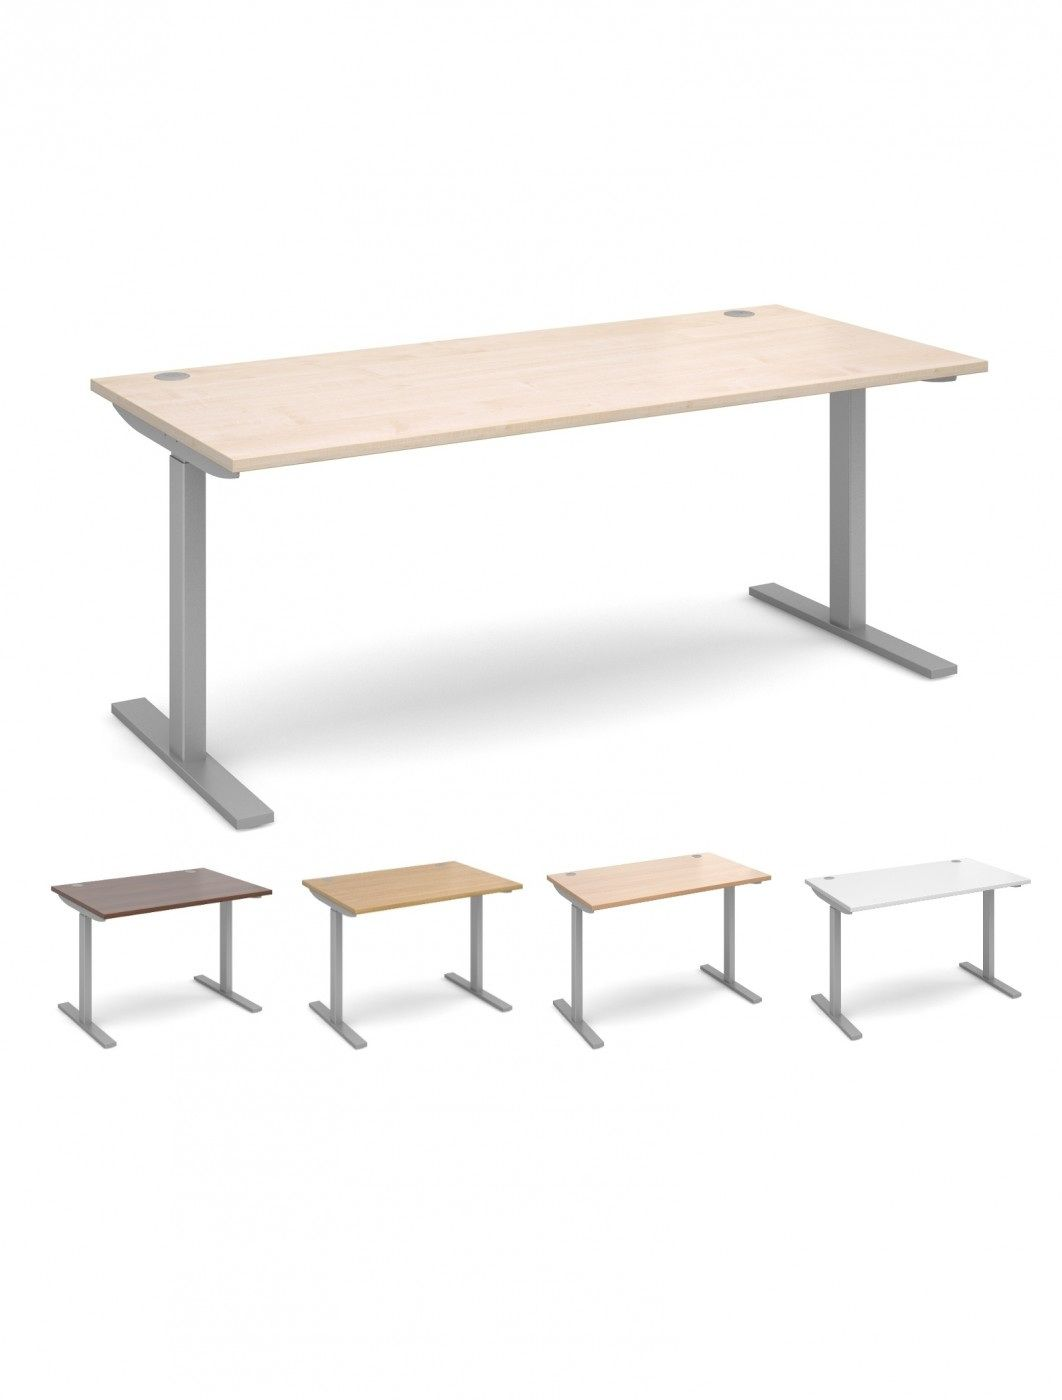 Charmant Wide Office Desk   Country Home Office Furniture Check More At Http://www